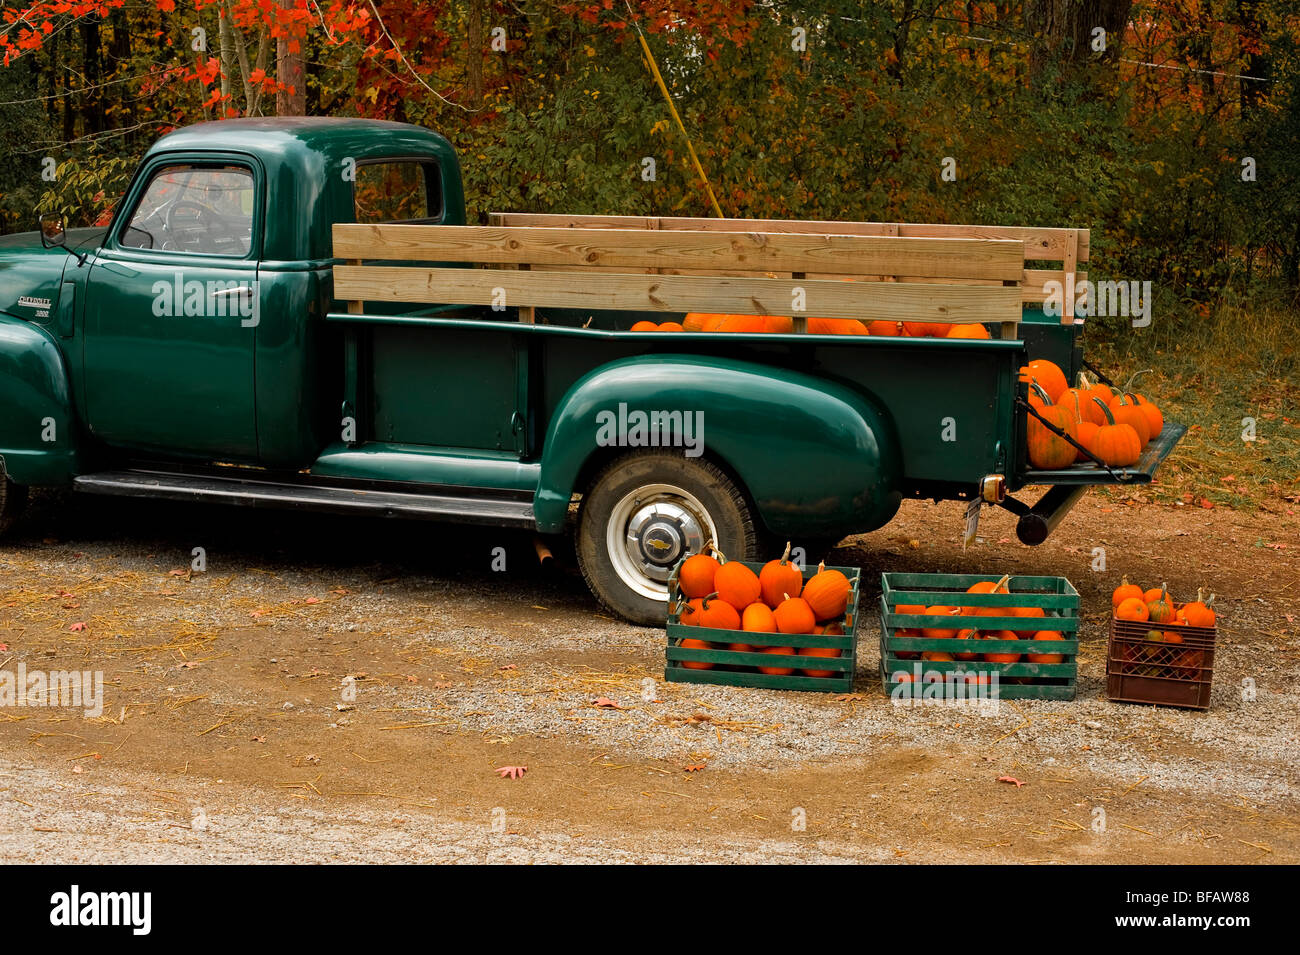 old pickup truck with pumpkins Stock Photo: 26669560 - Alamy